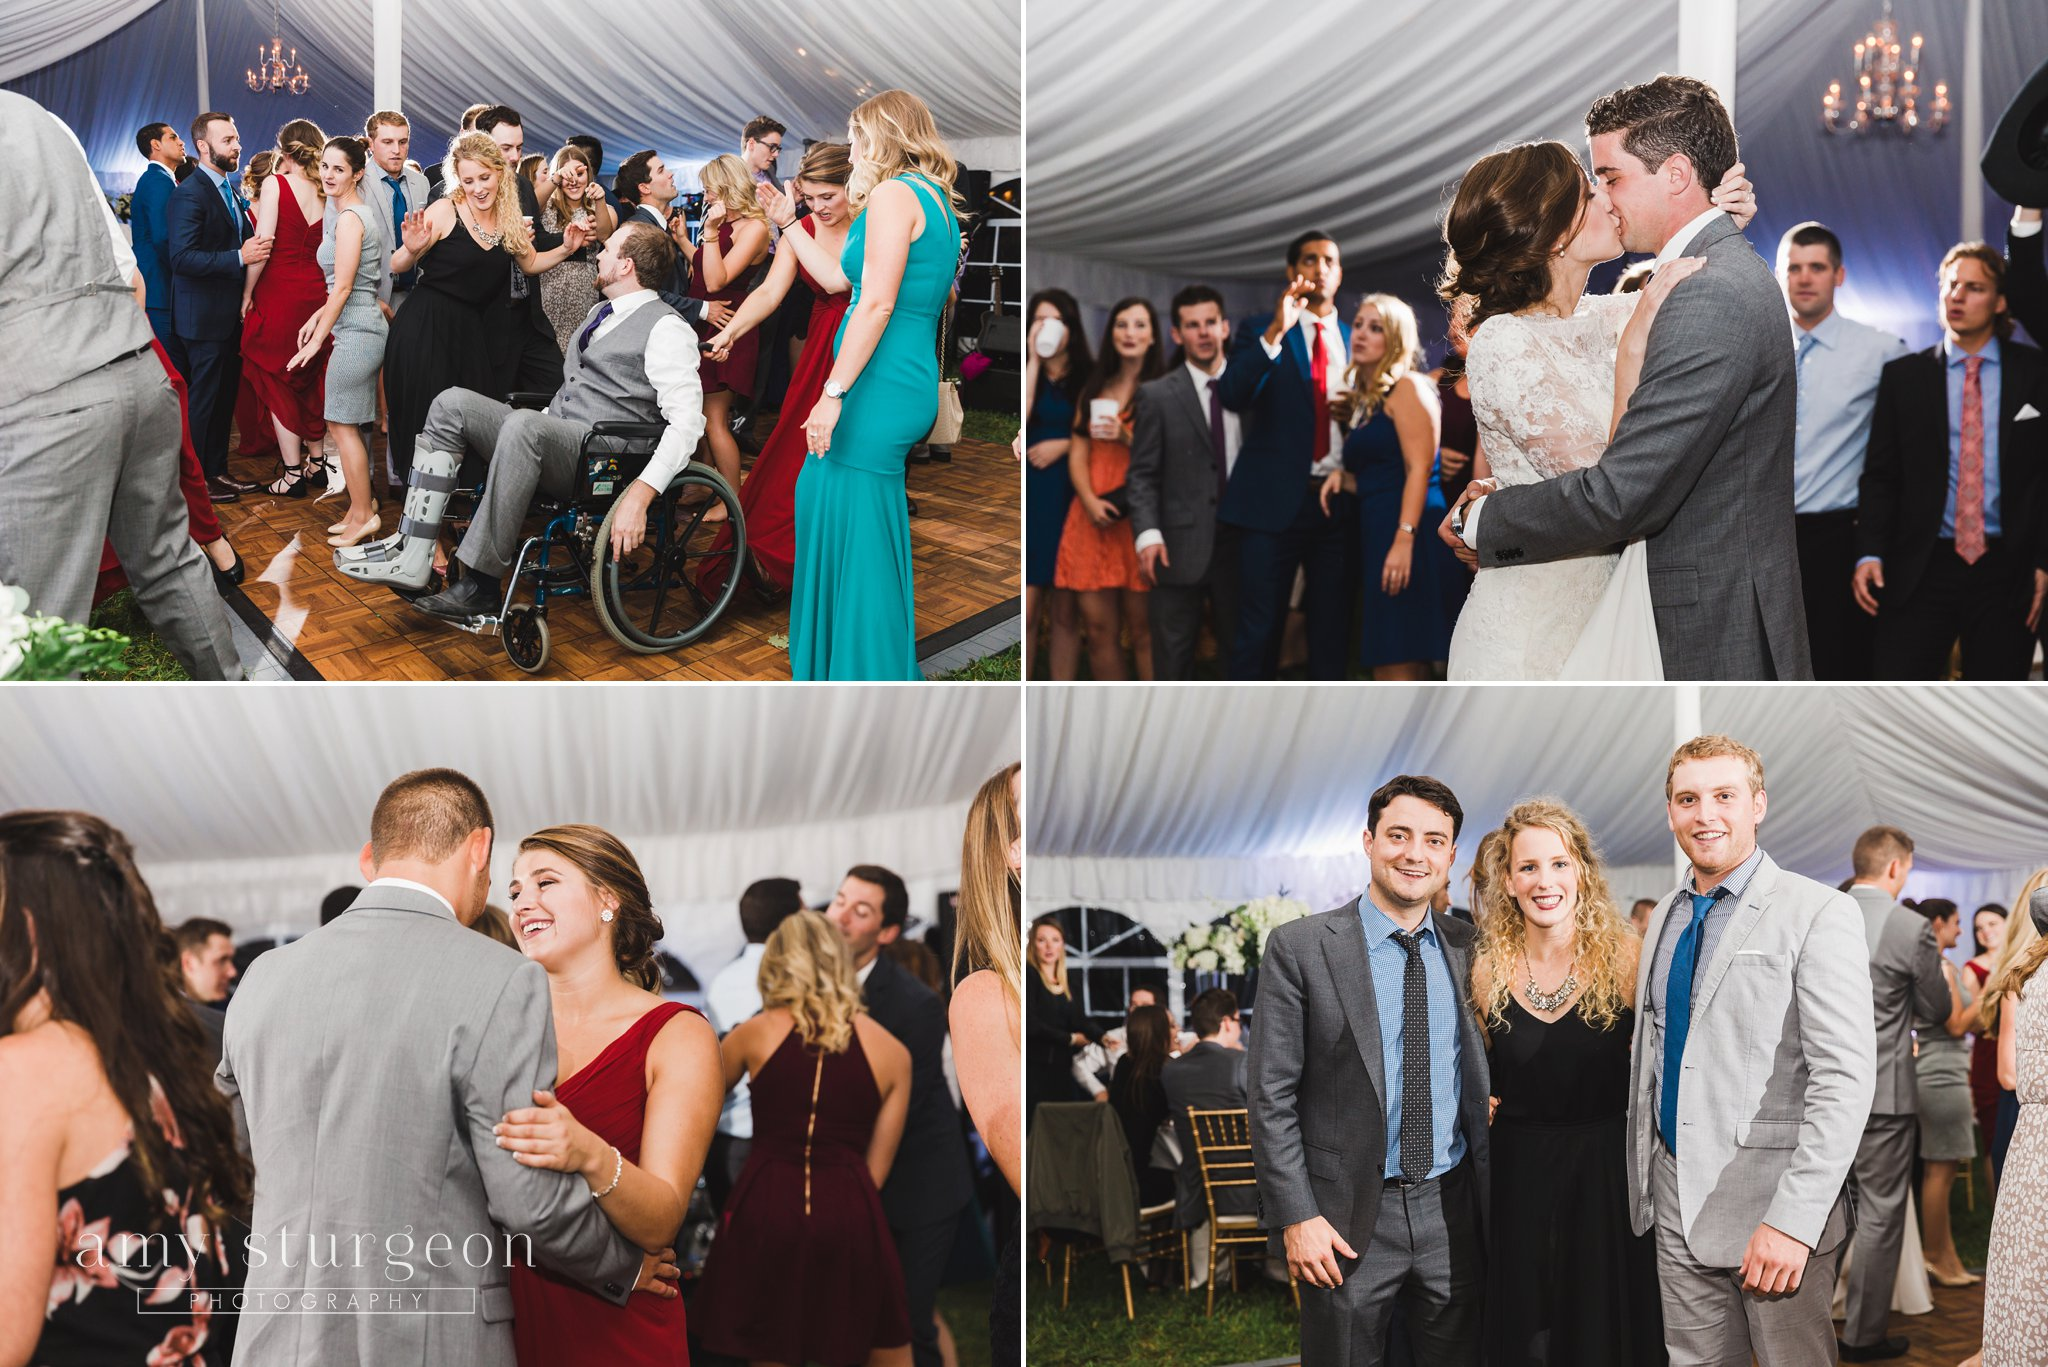 The uplighting in the wedding tent was beautiful at the alpaca farm wedding